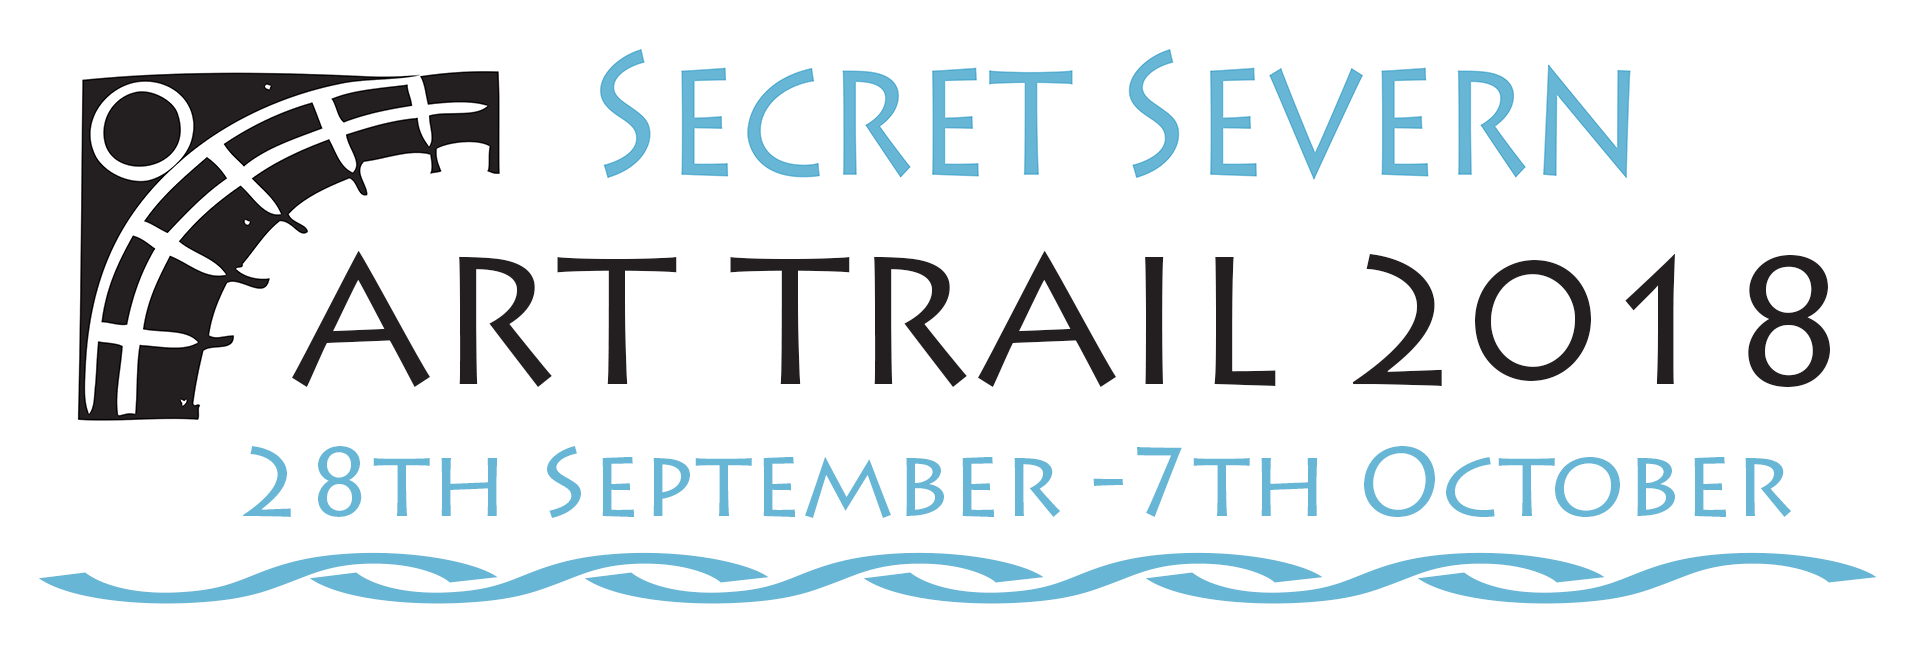 Secret Severn Art Trail